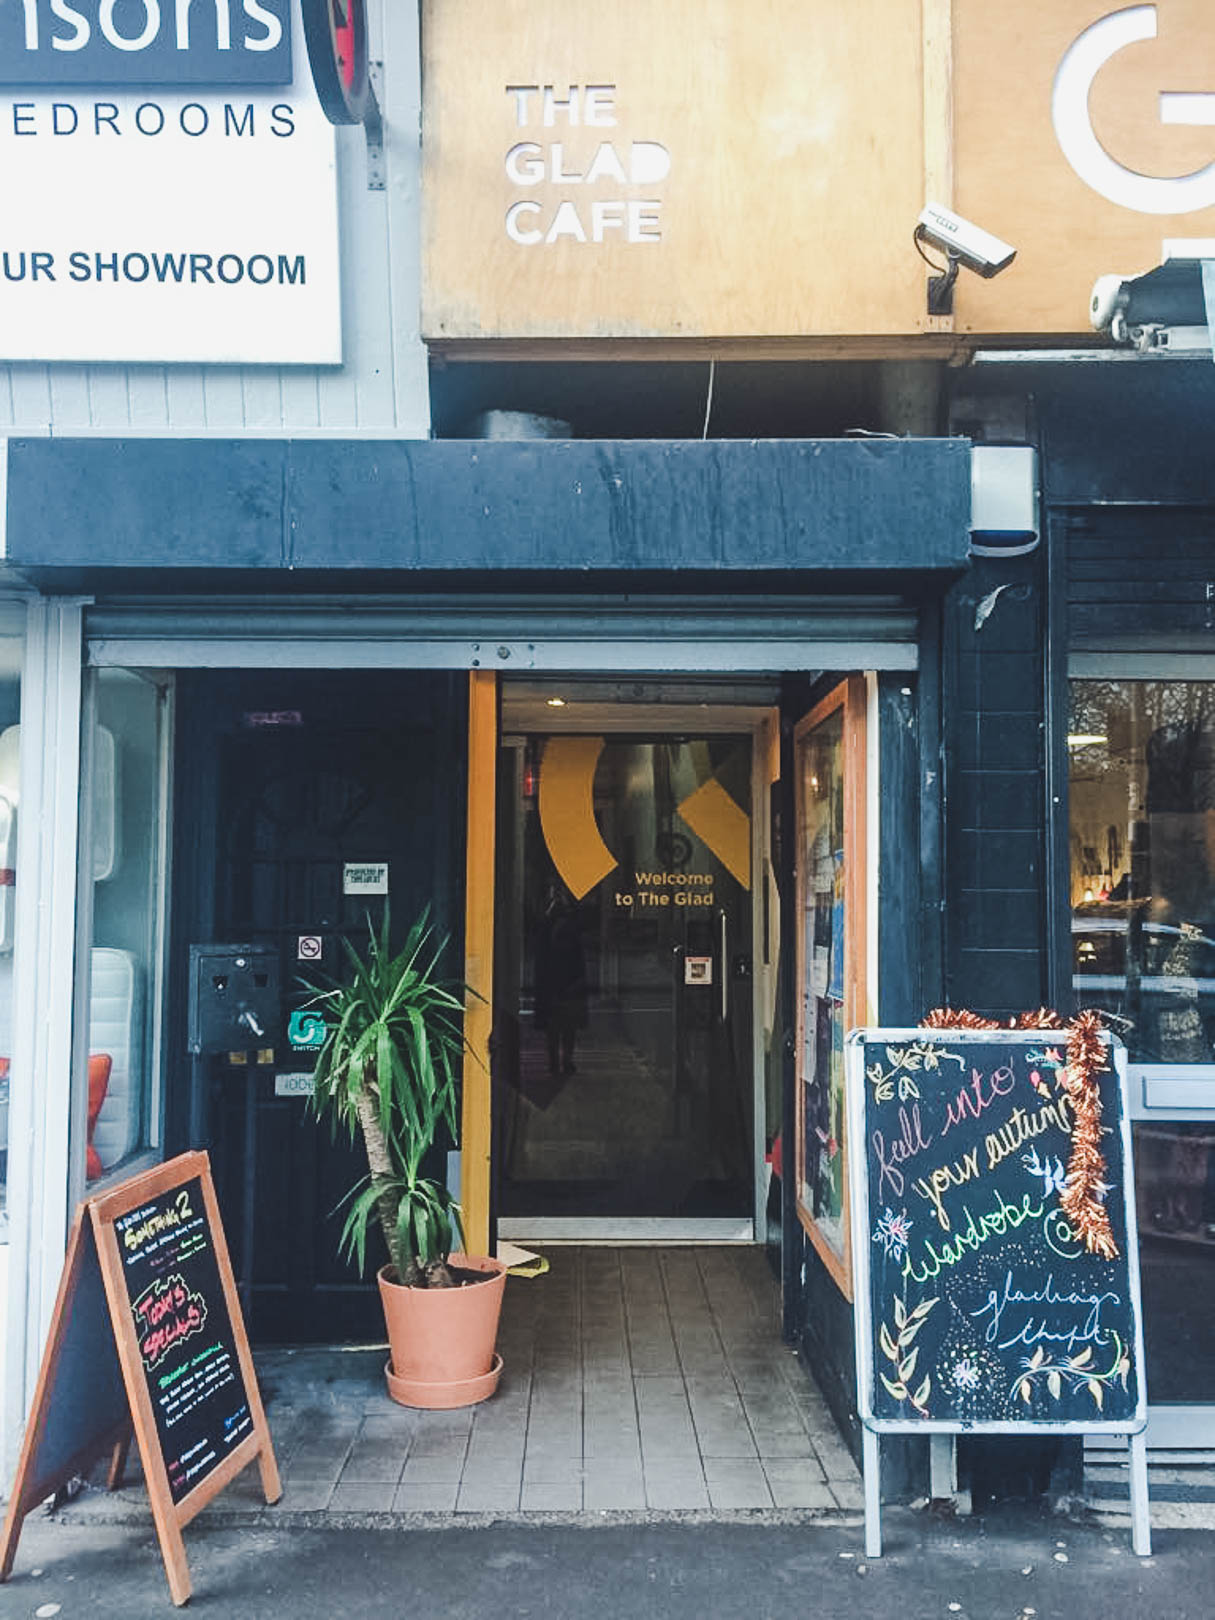 The Glad Cafe, Glasgow is a fully licensed cafe and venue in the Southside, offering a range of vegan dishes for breakfast, lunch and dinner. In the evenings the cafe turns into a popular bar which offers craft beers from Scotland and further afield.